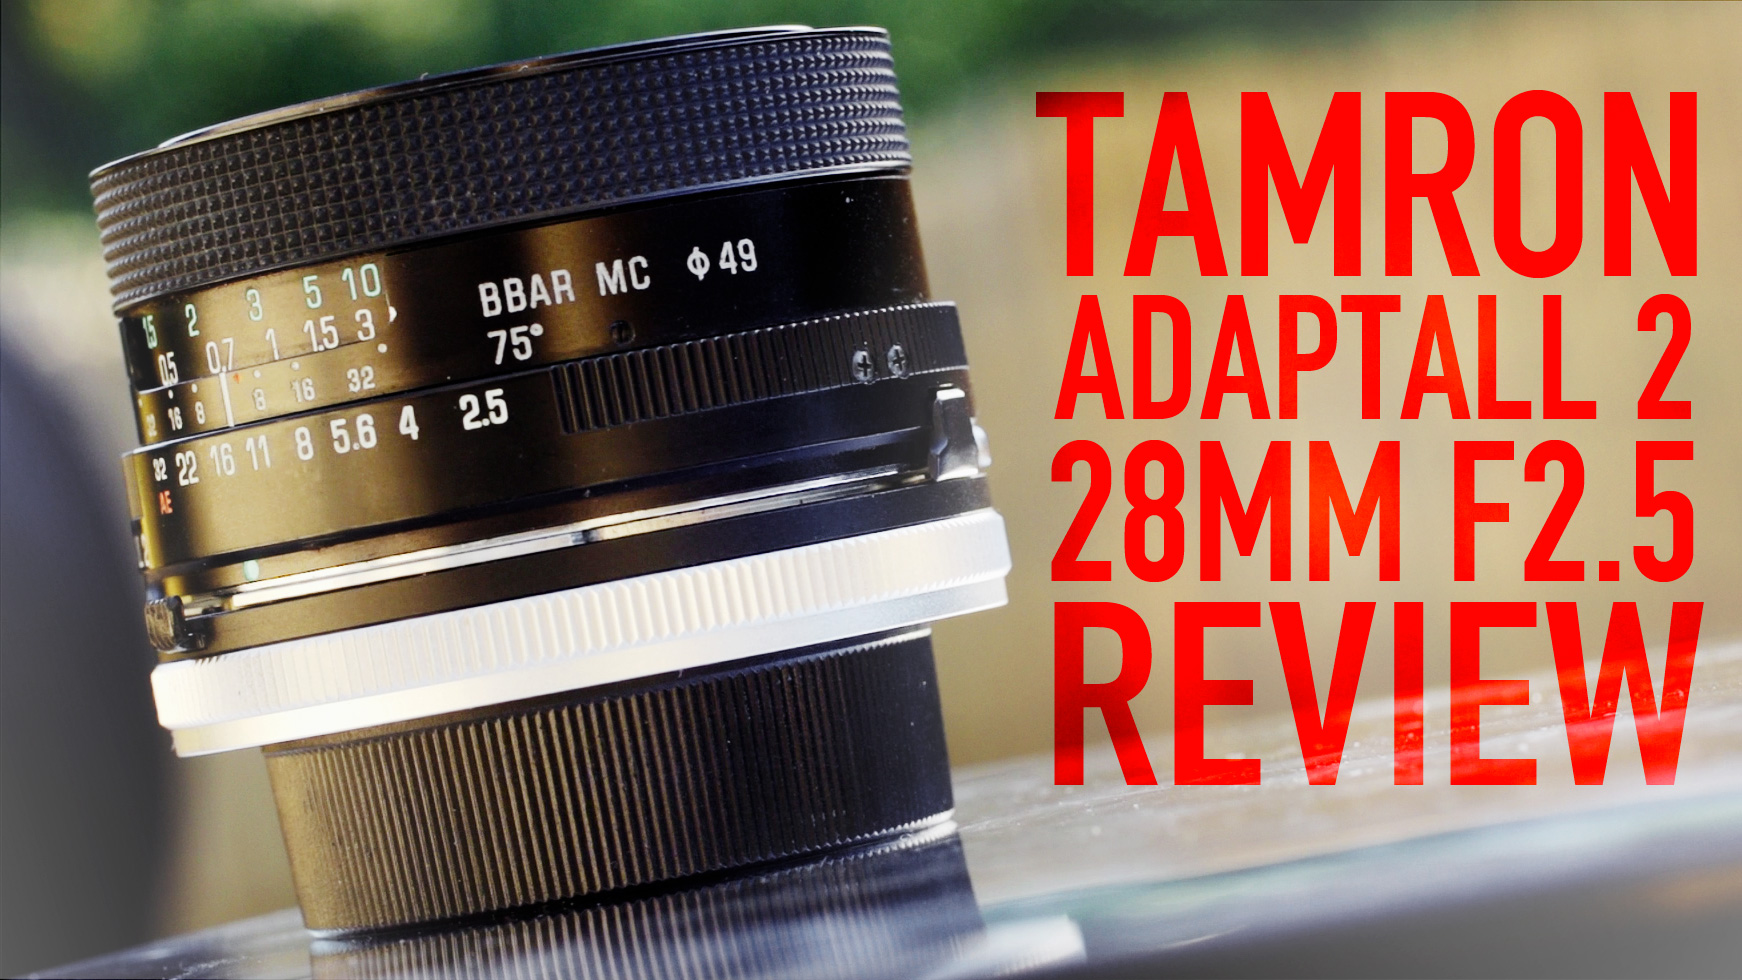 Tarmon Adaptall-2 28mm F2.5 REVIEW